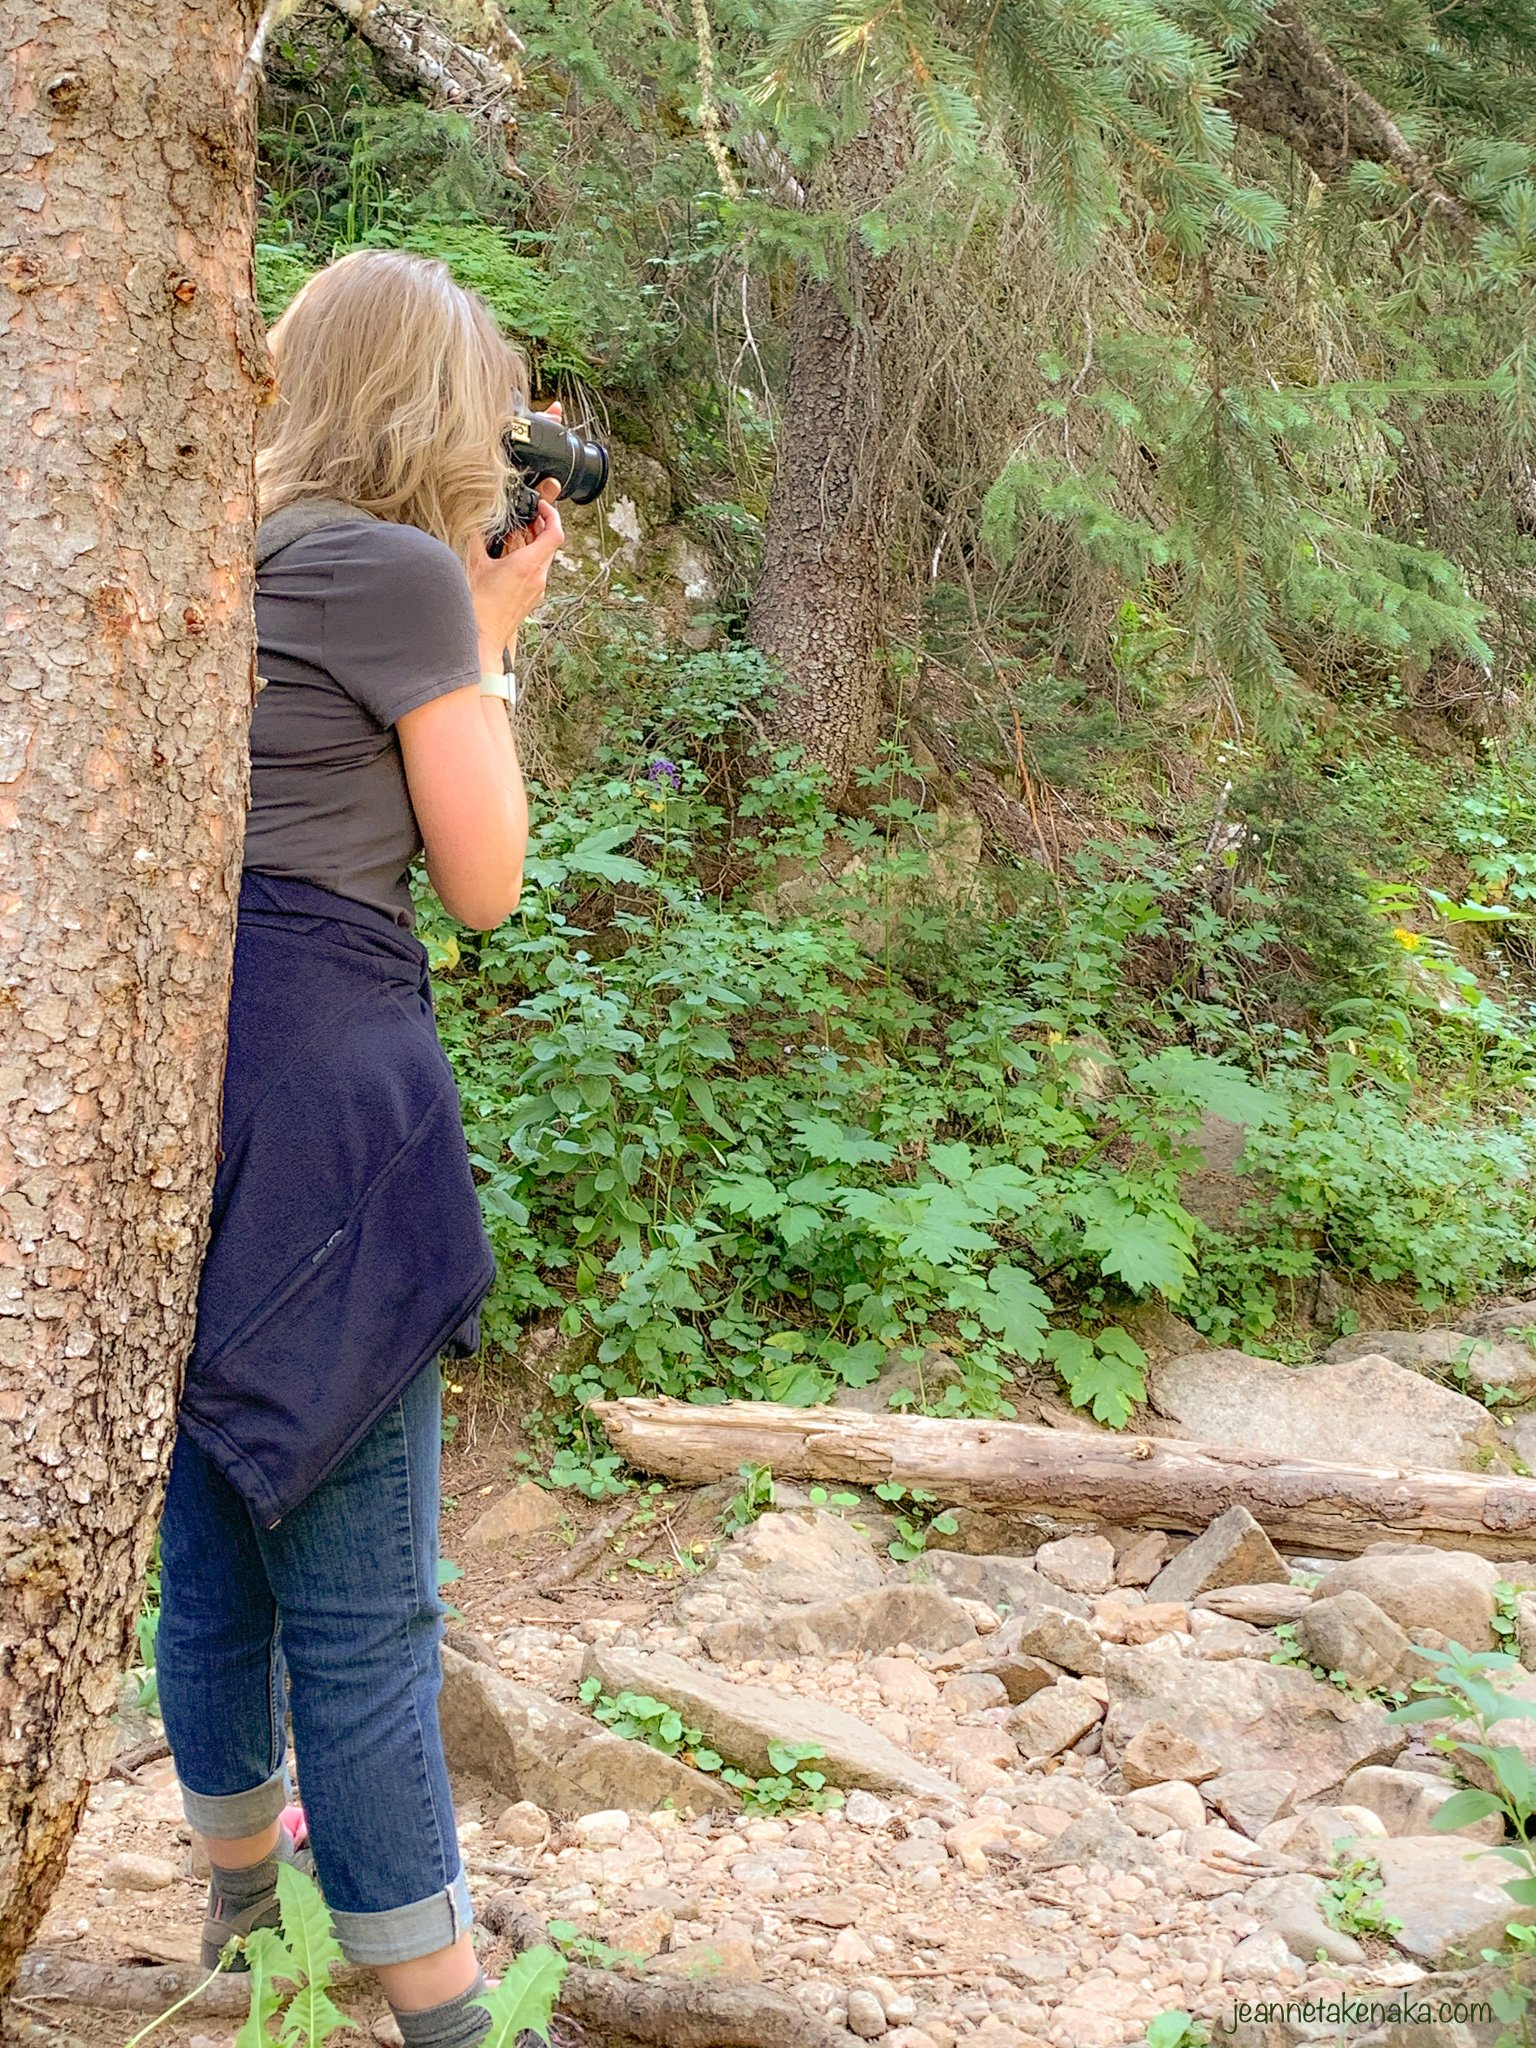 A woman taking a photo with a camera